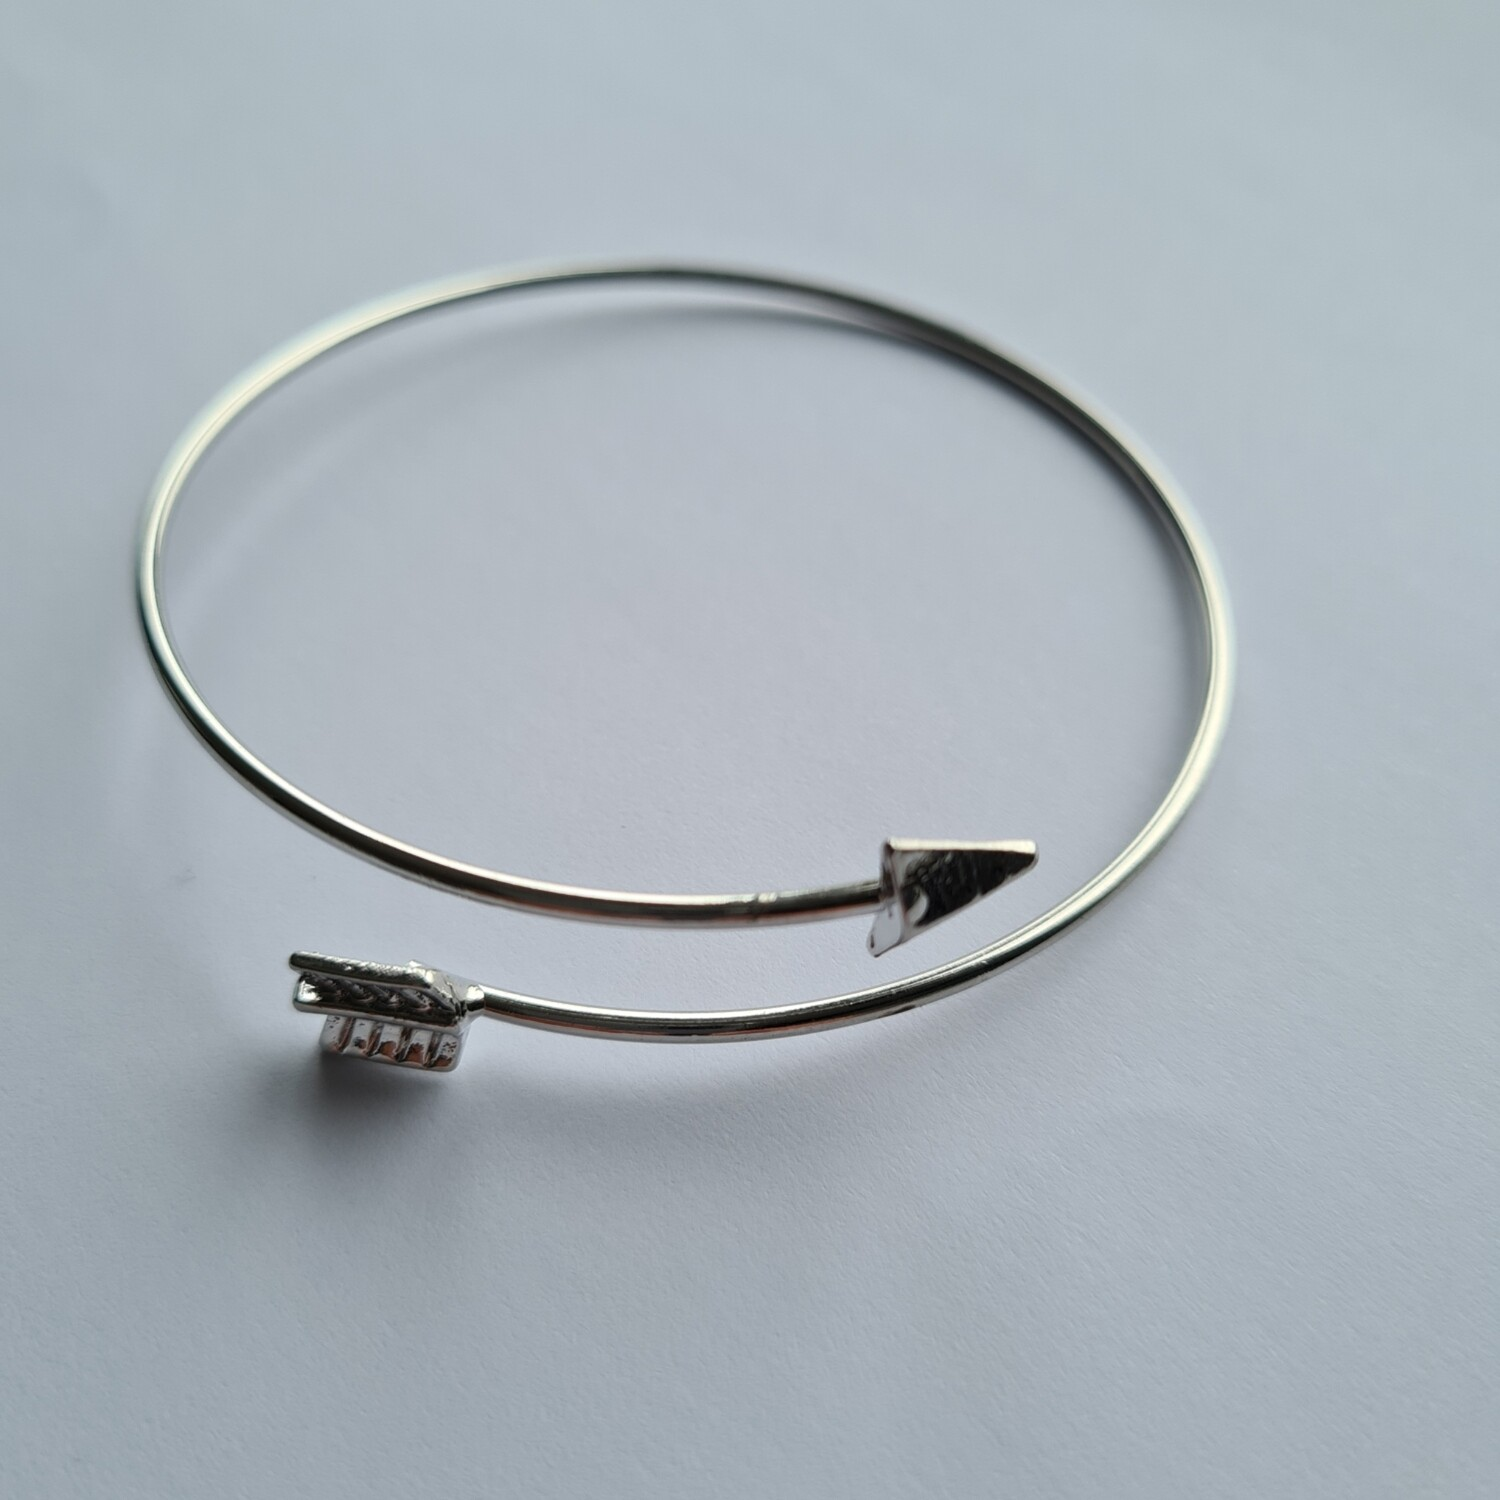 Arrow armband zilver